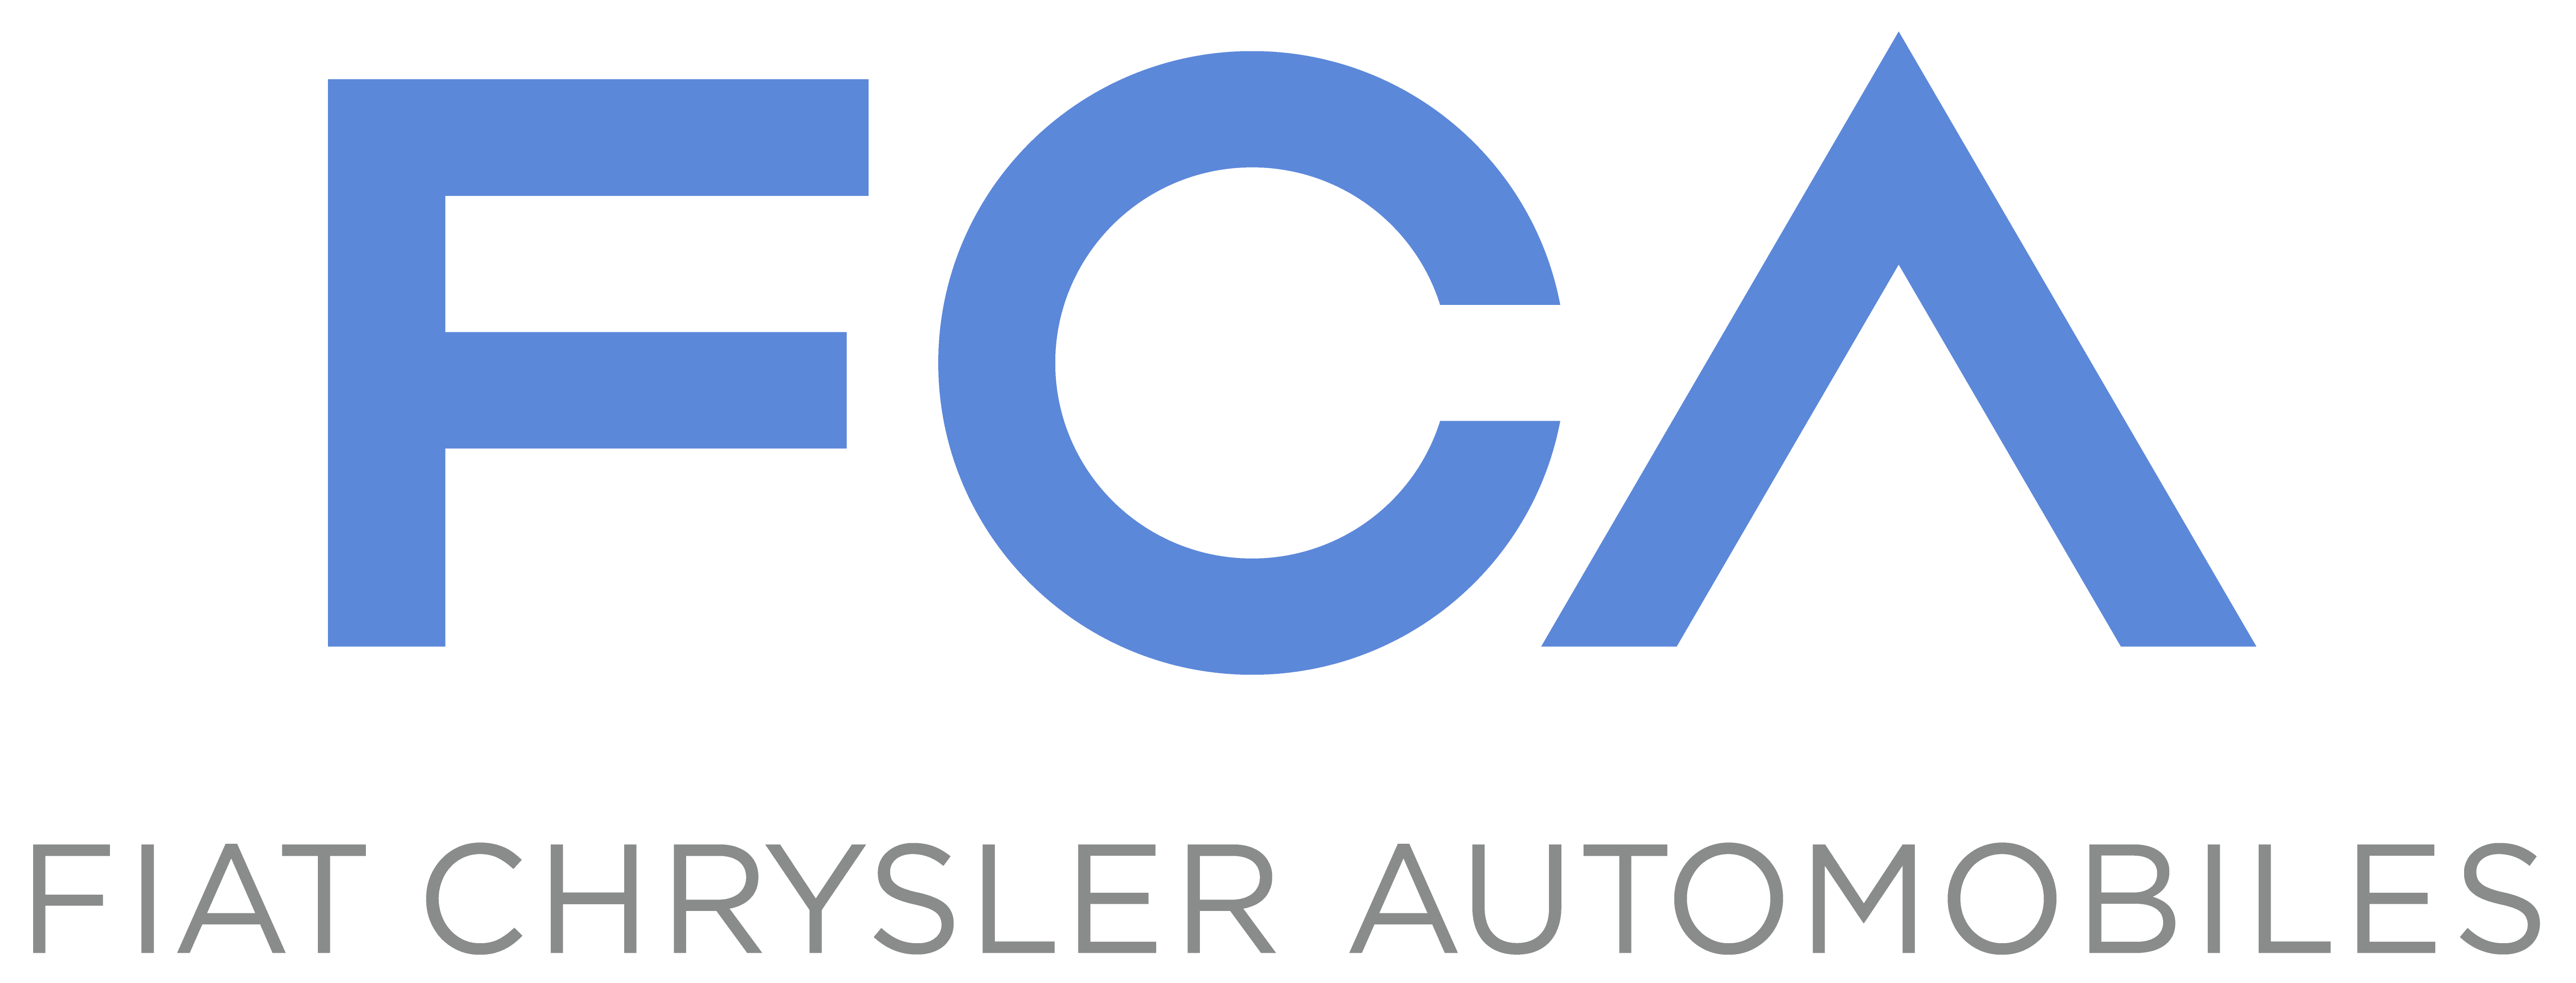 File fiat chrysler automobiles. Group vector logo image library download